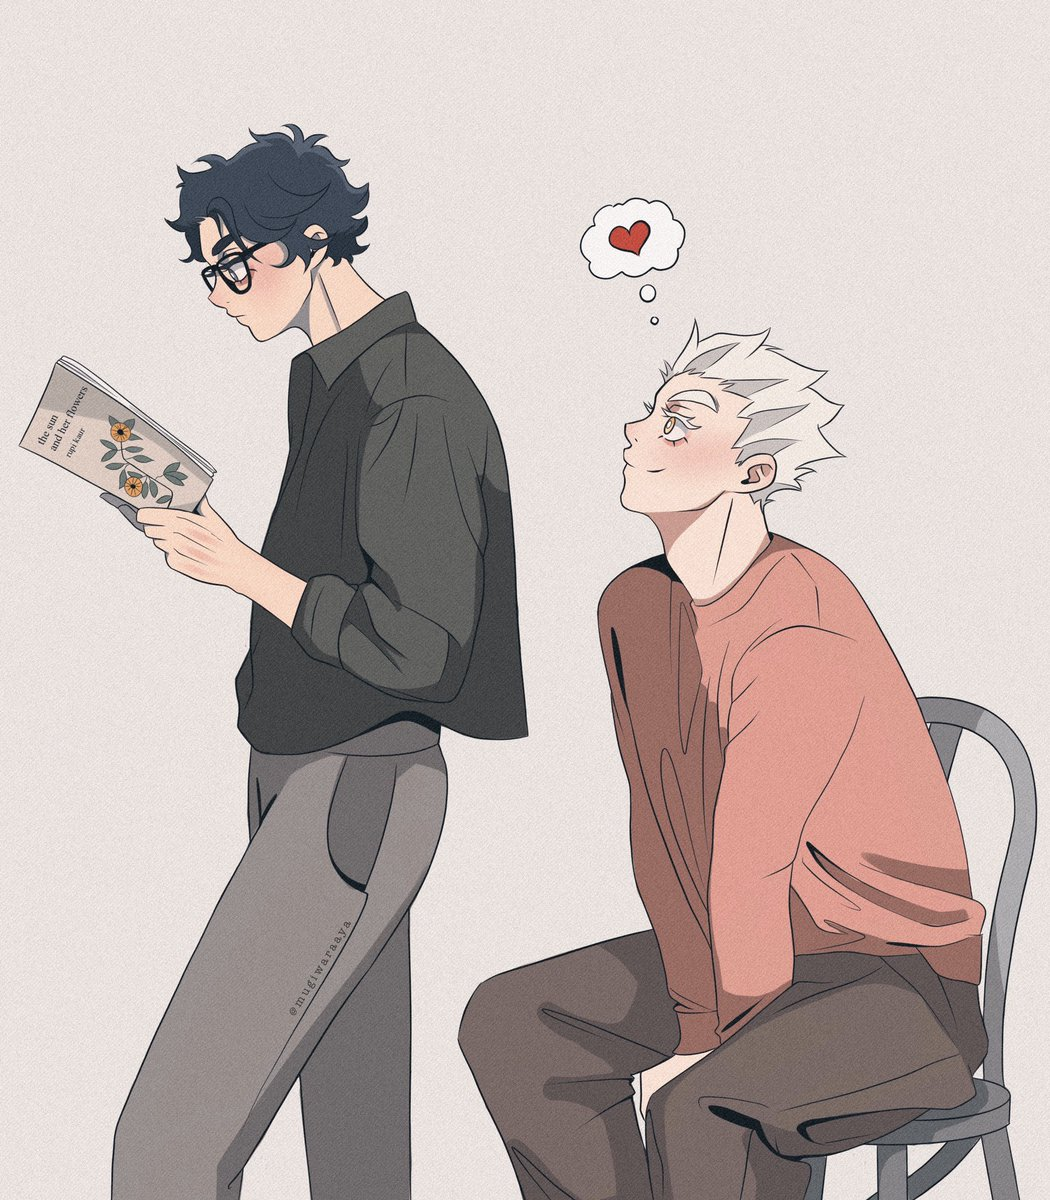 another sneak attack #bokuaka #haikyuu #ハイキュー